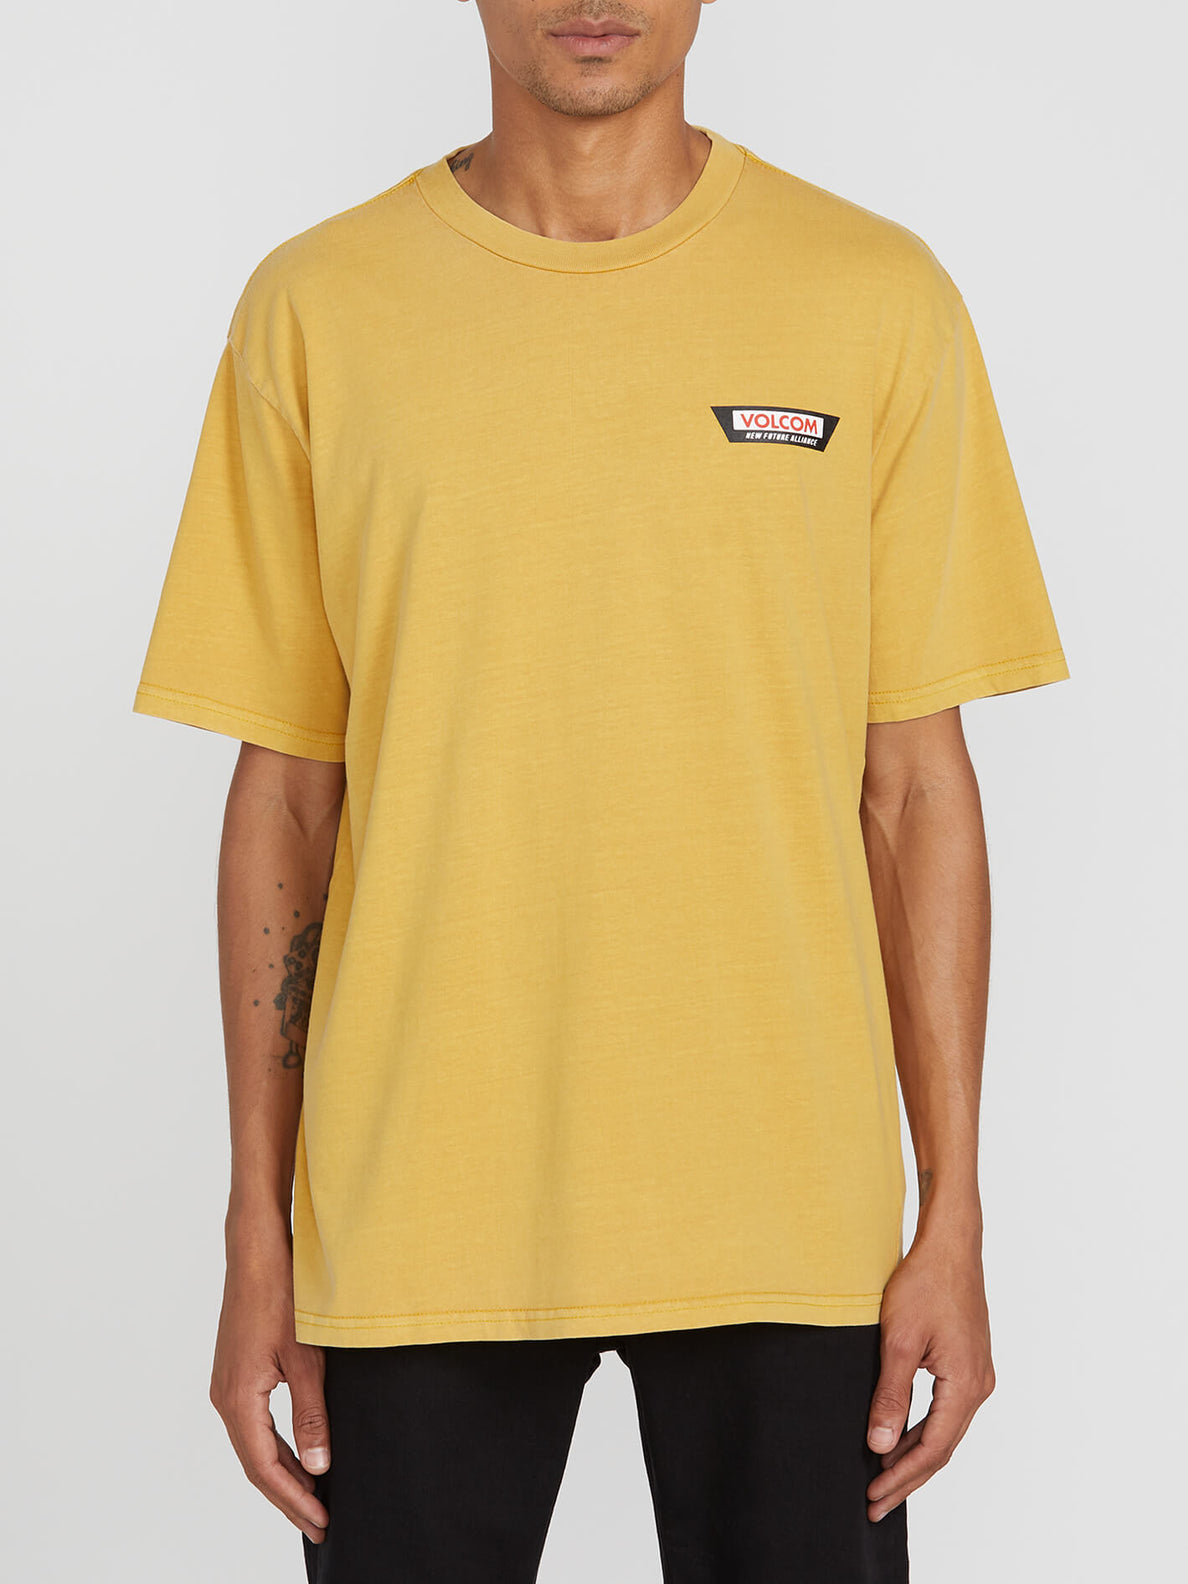 Decept S/s Tee Gold (A4312001_GLD) [F]